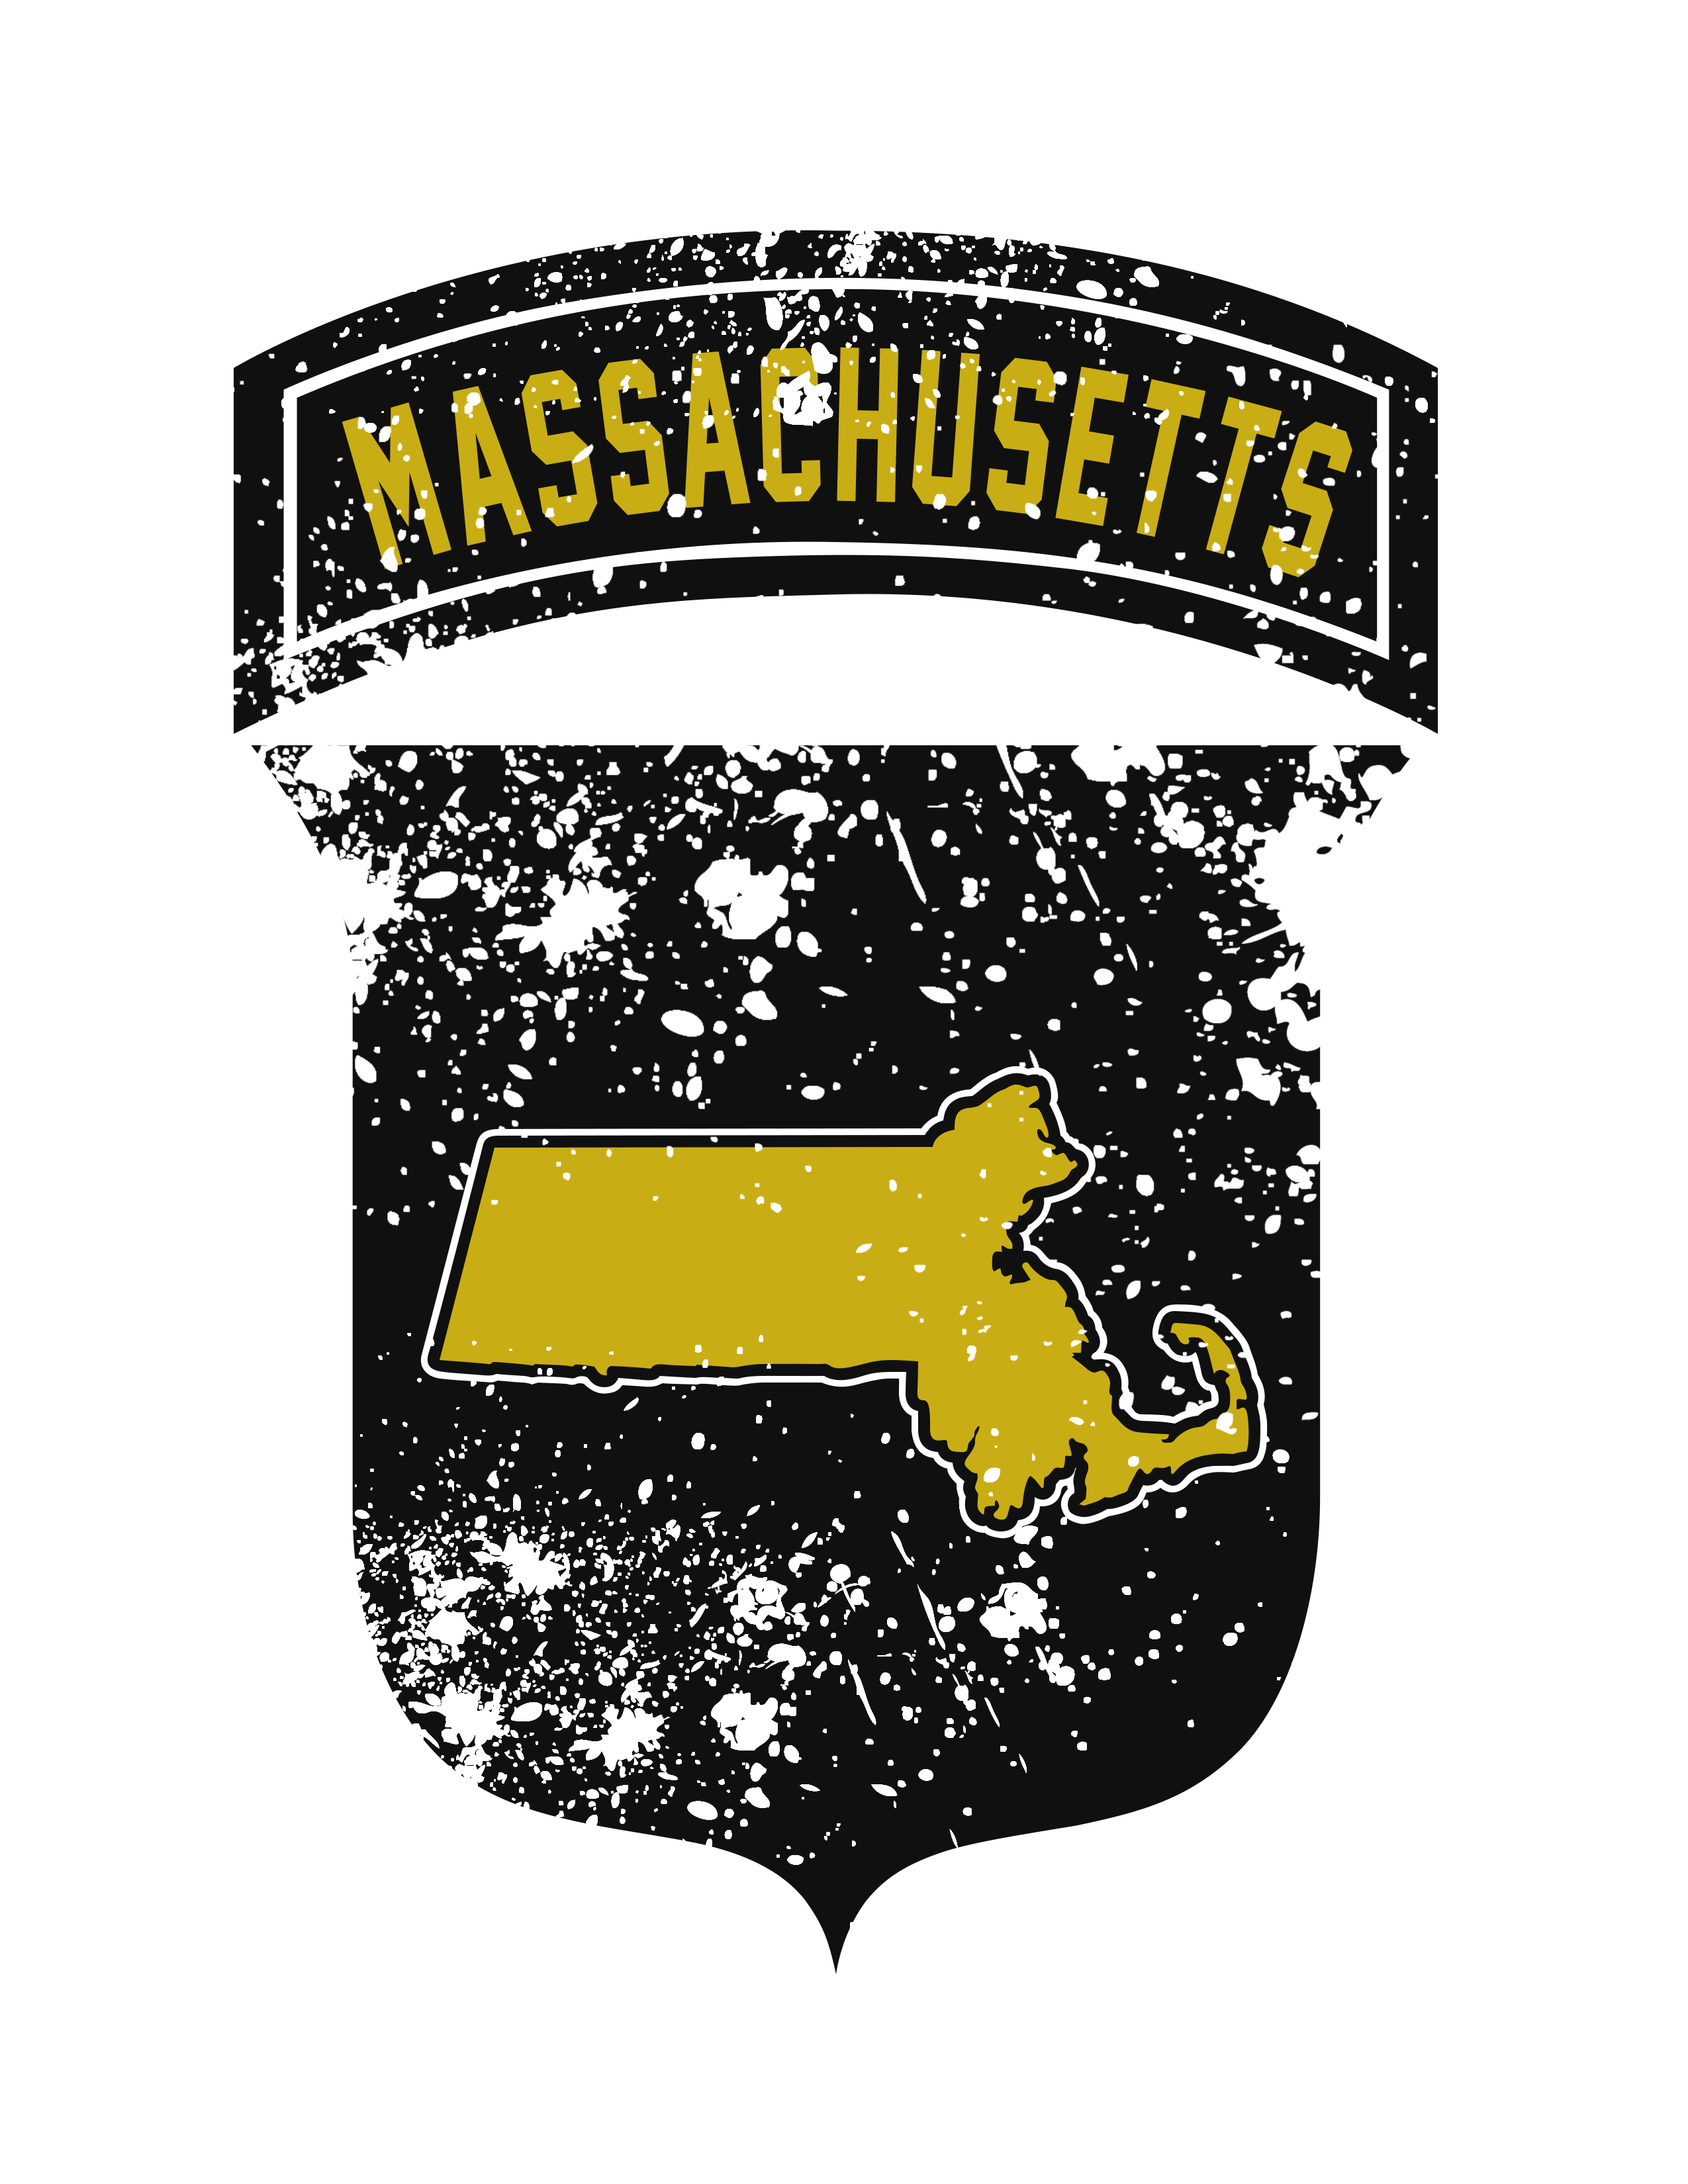 Airborne Crest for New England States